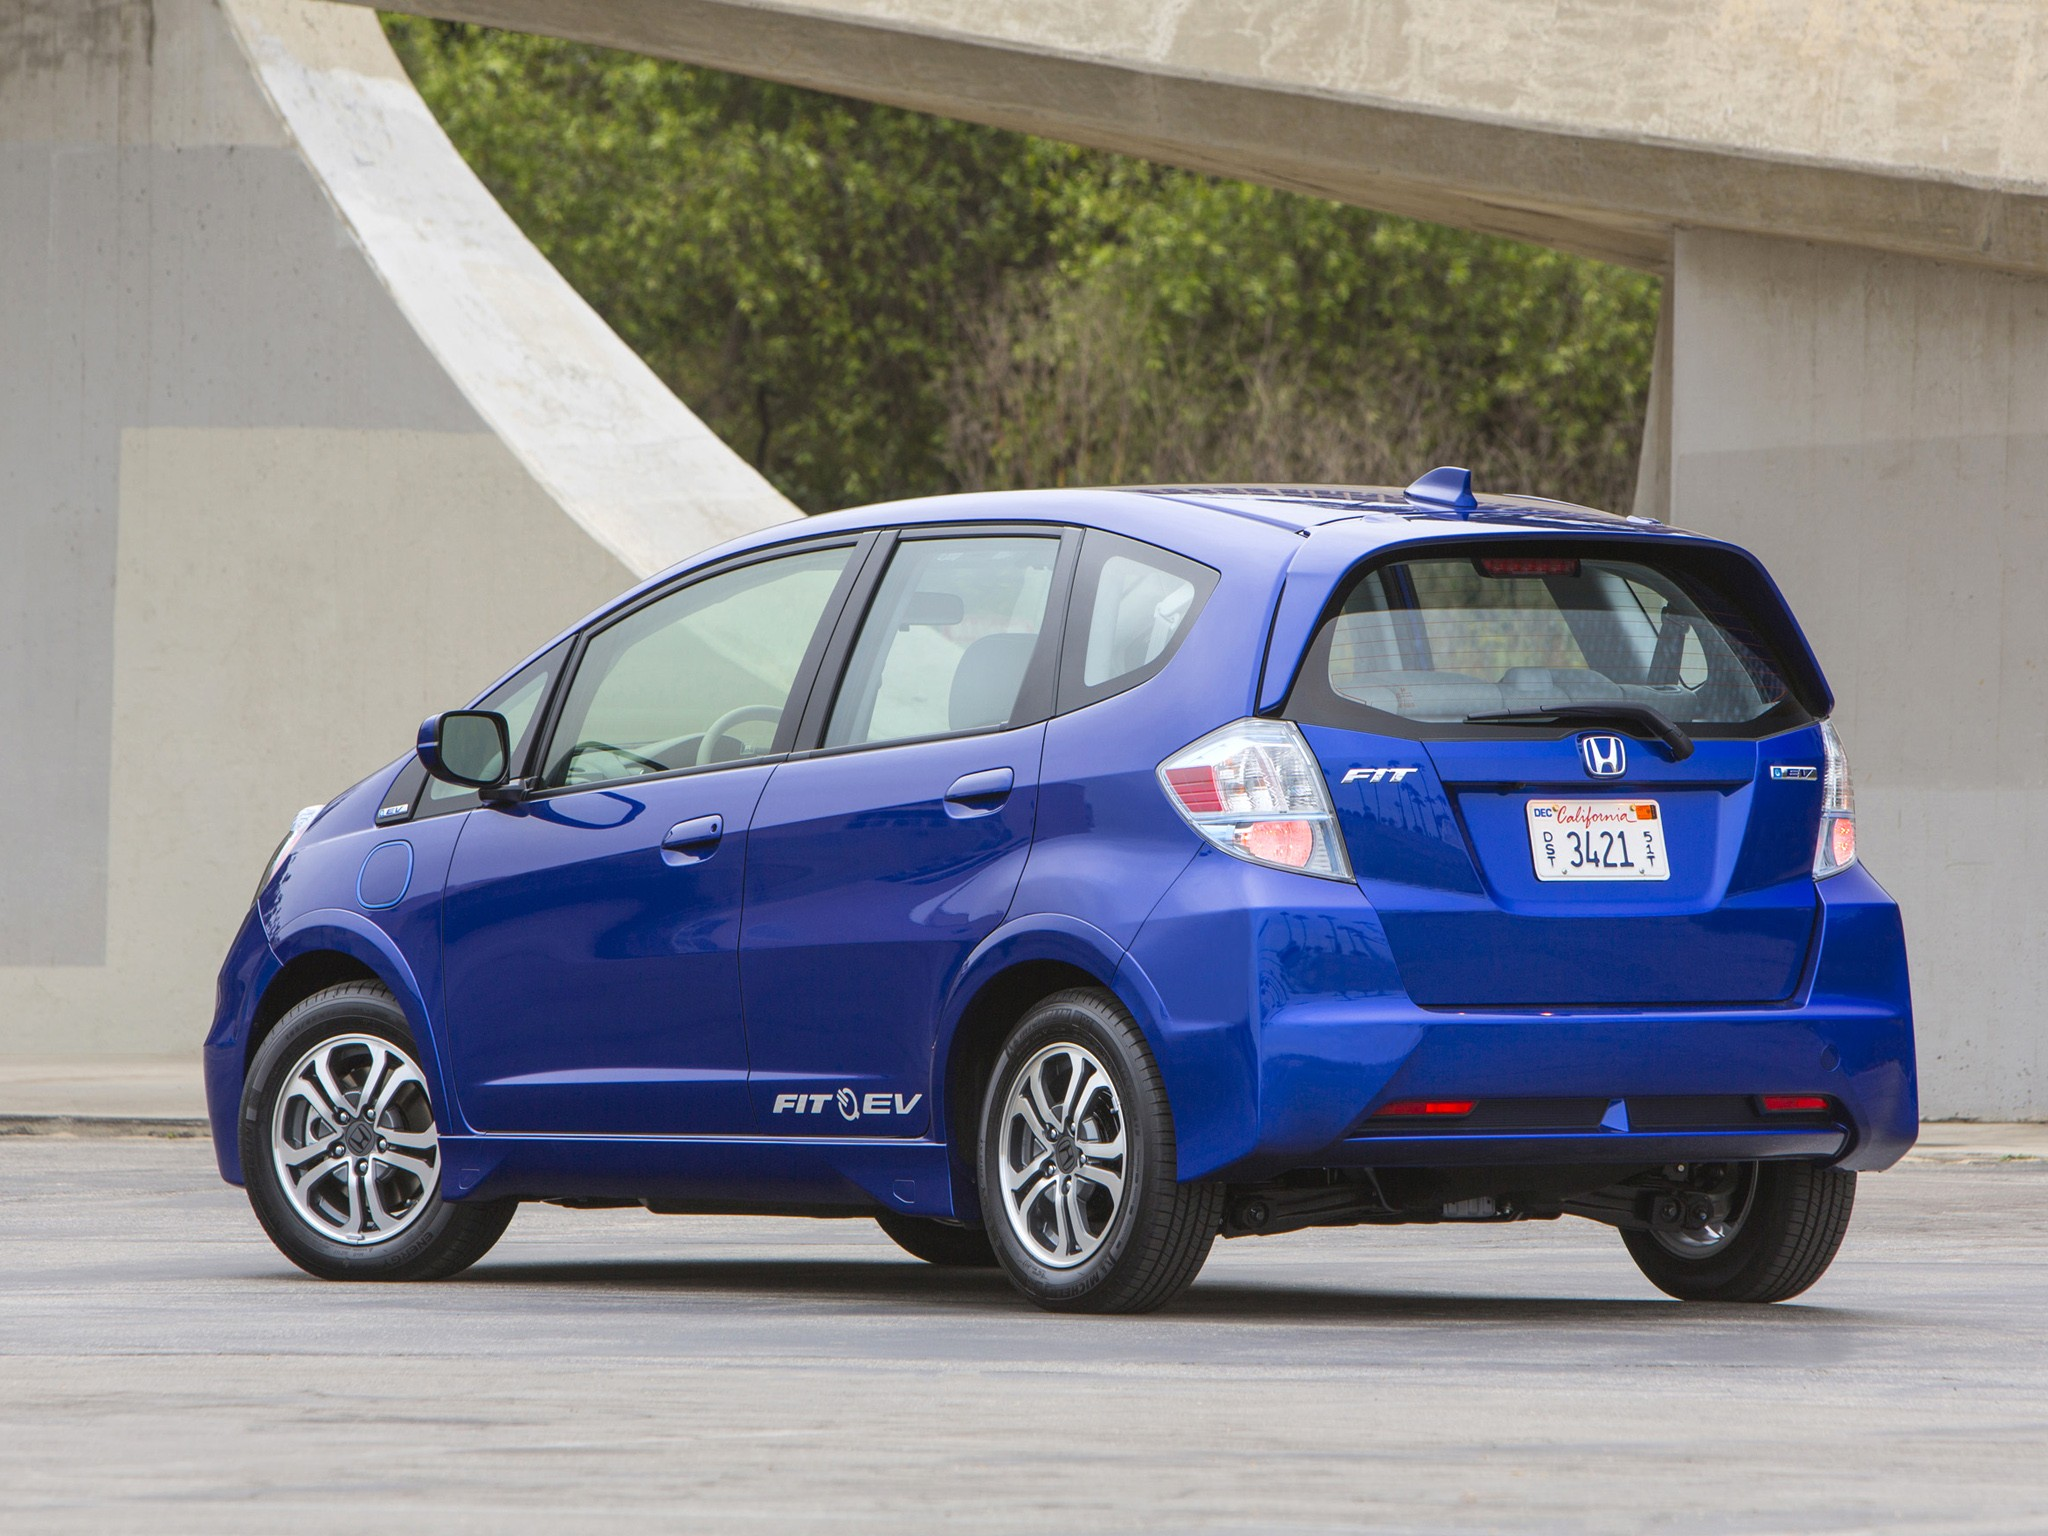 Hydrogen Fuel Cell Cars >> HONDA Fit EV specs & photos - 2012, 2013, 2014 - autoevolution